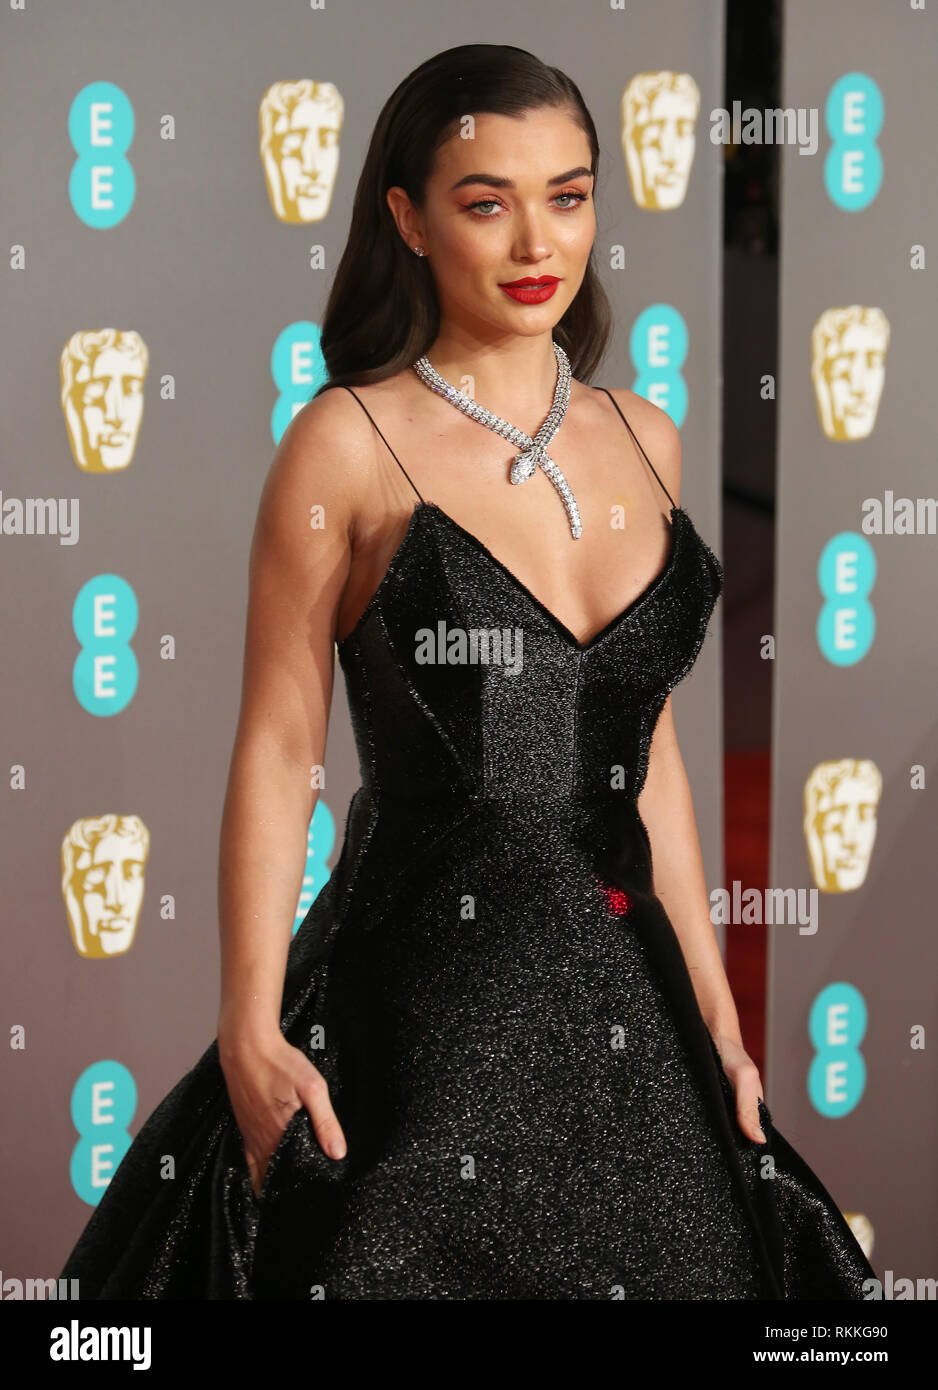 Amy Jackson Seen On The Red Carpet During The British Academy Film Awards 2019 At The Royal Albert Hall In London Stock Photo Alamy